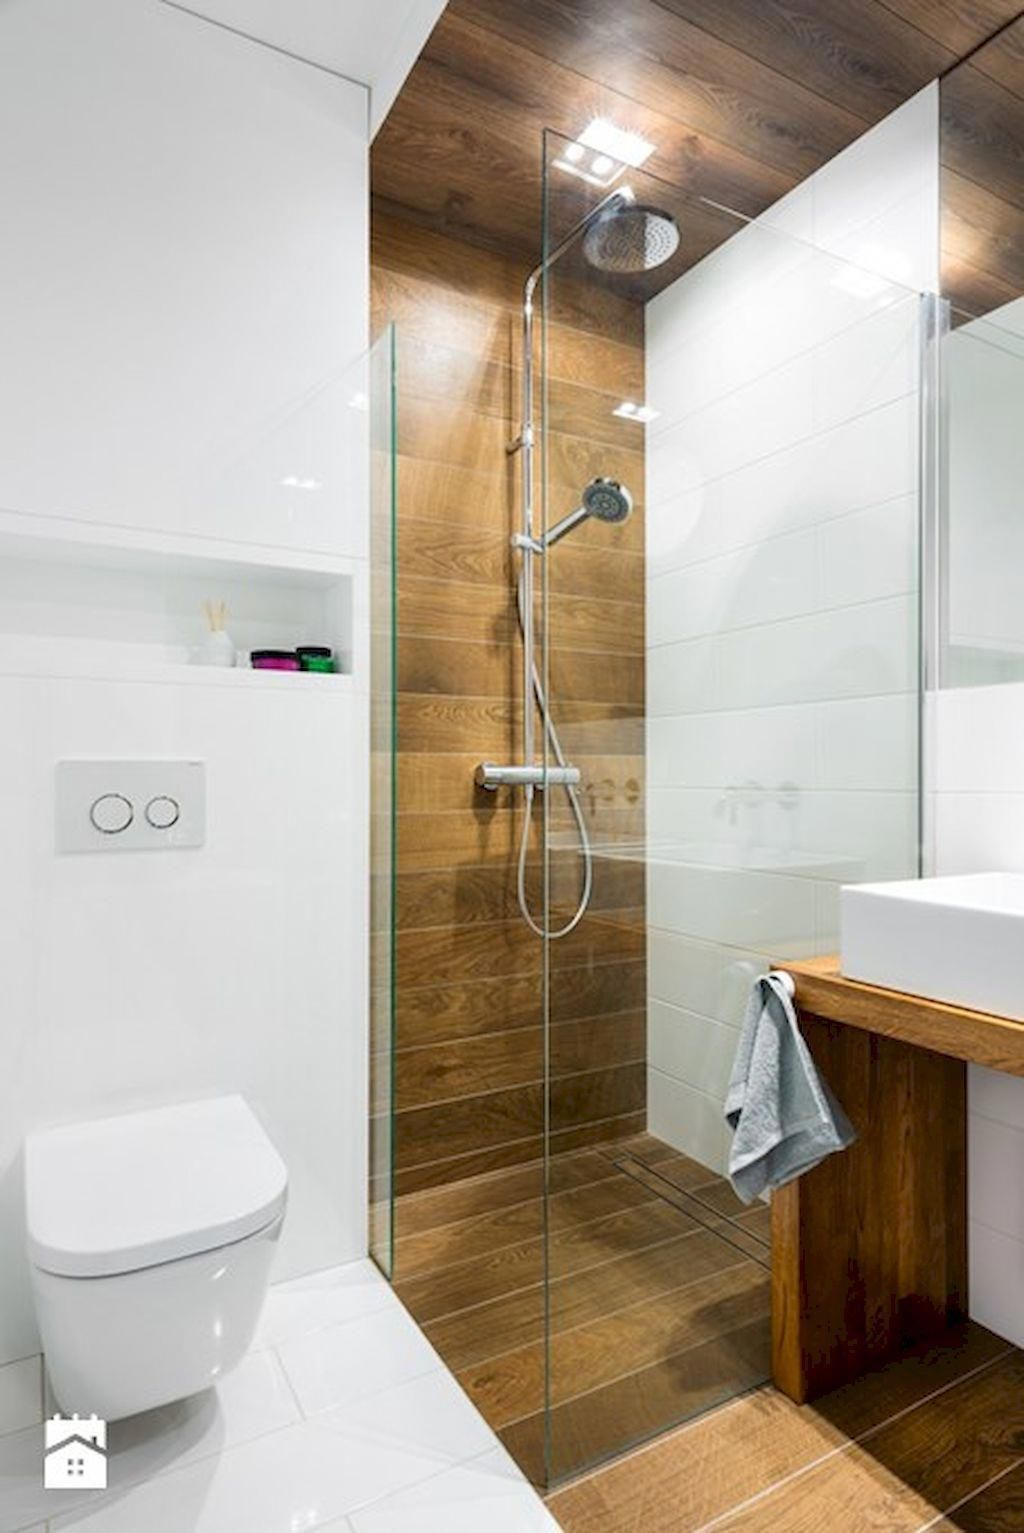 appealing bathroom decoration | Awesome! Appealing. Ideas for Bathroom Decor | Remodel and ...